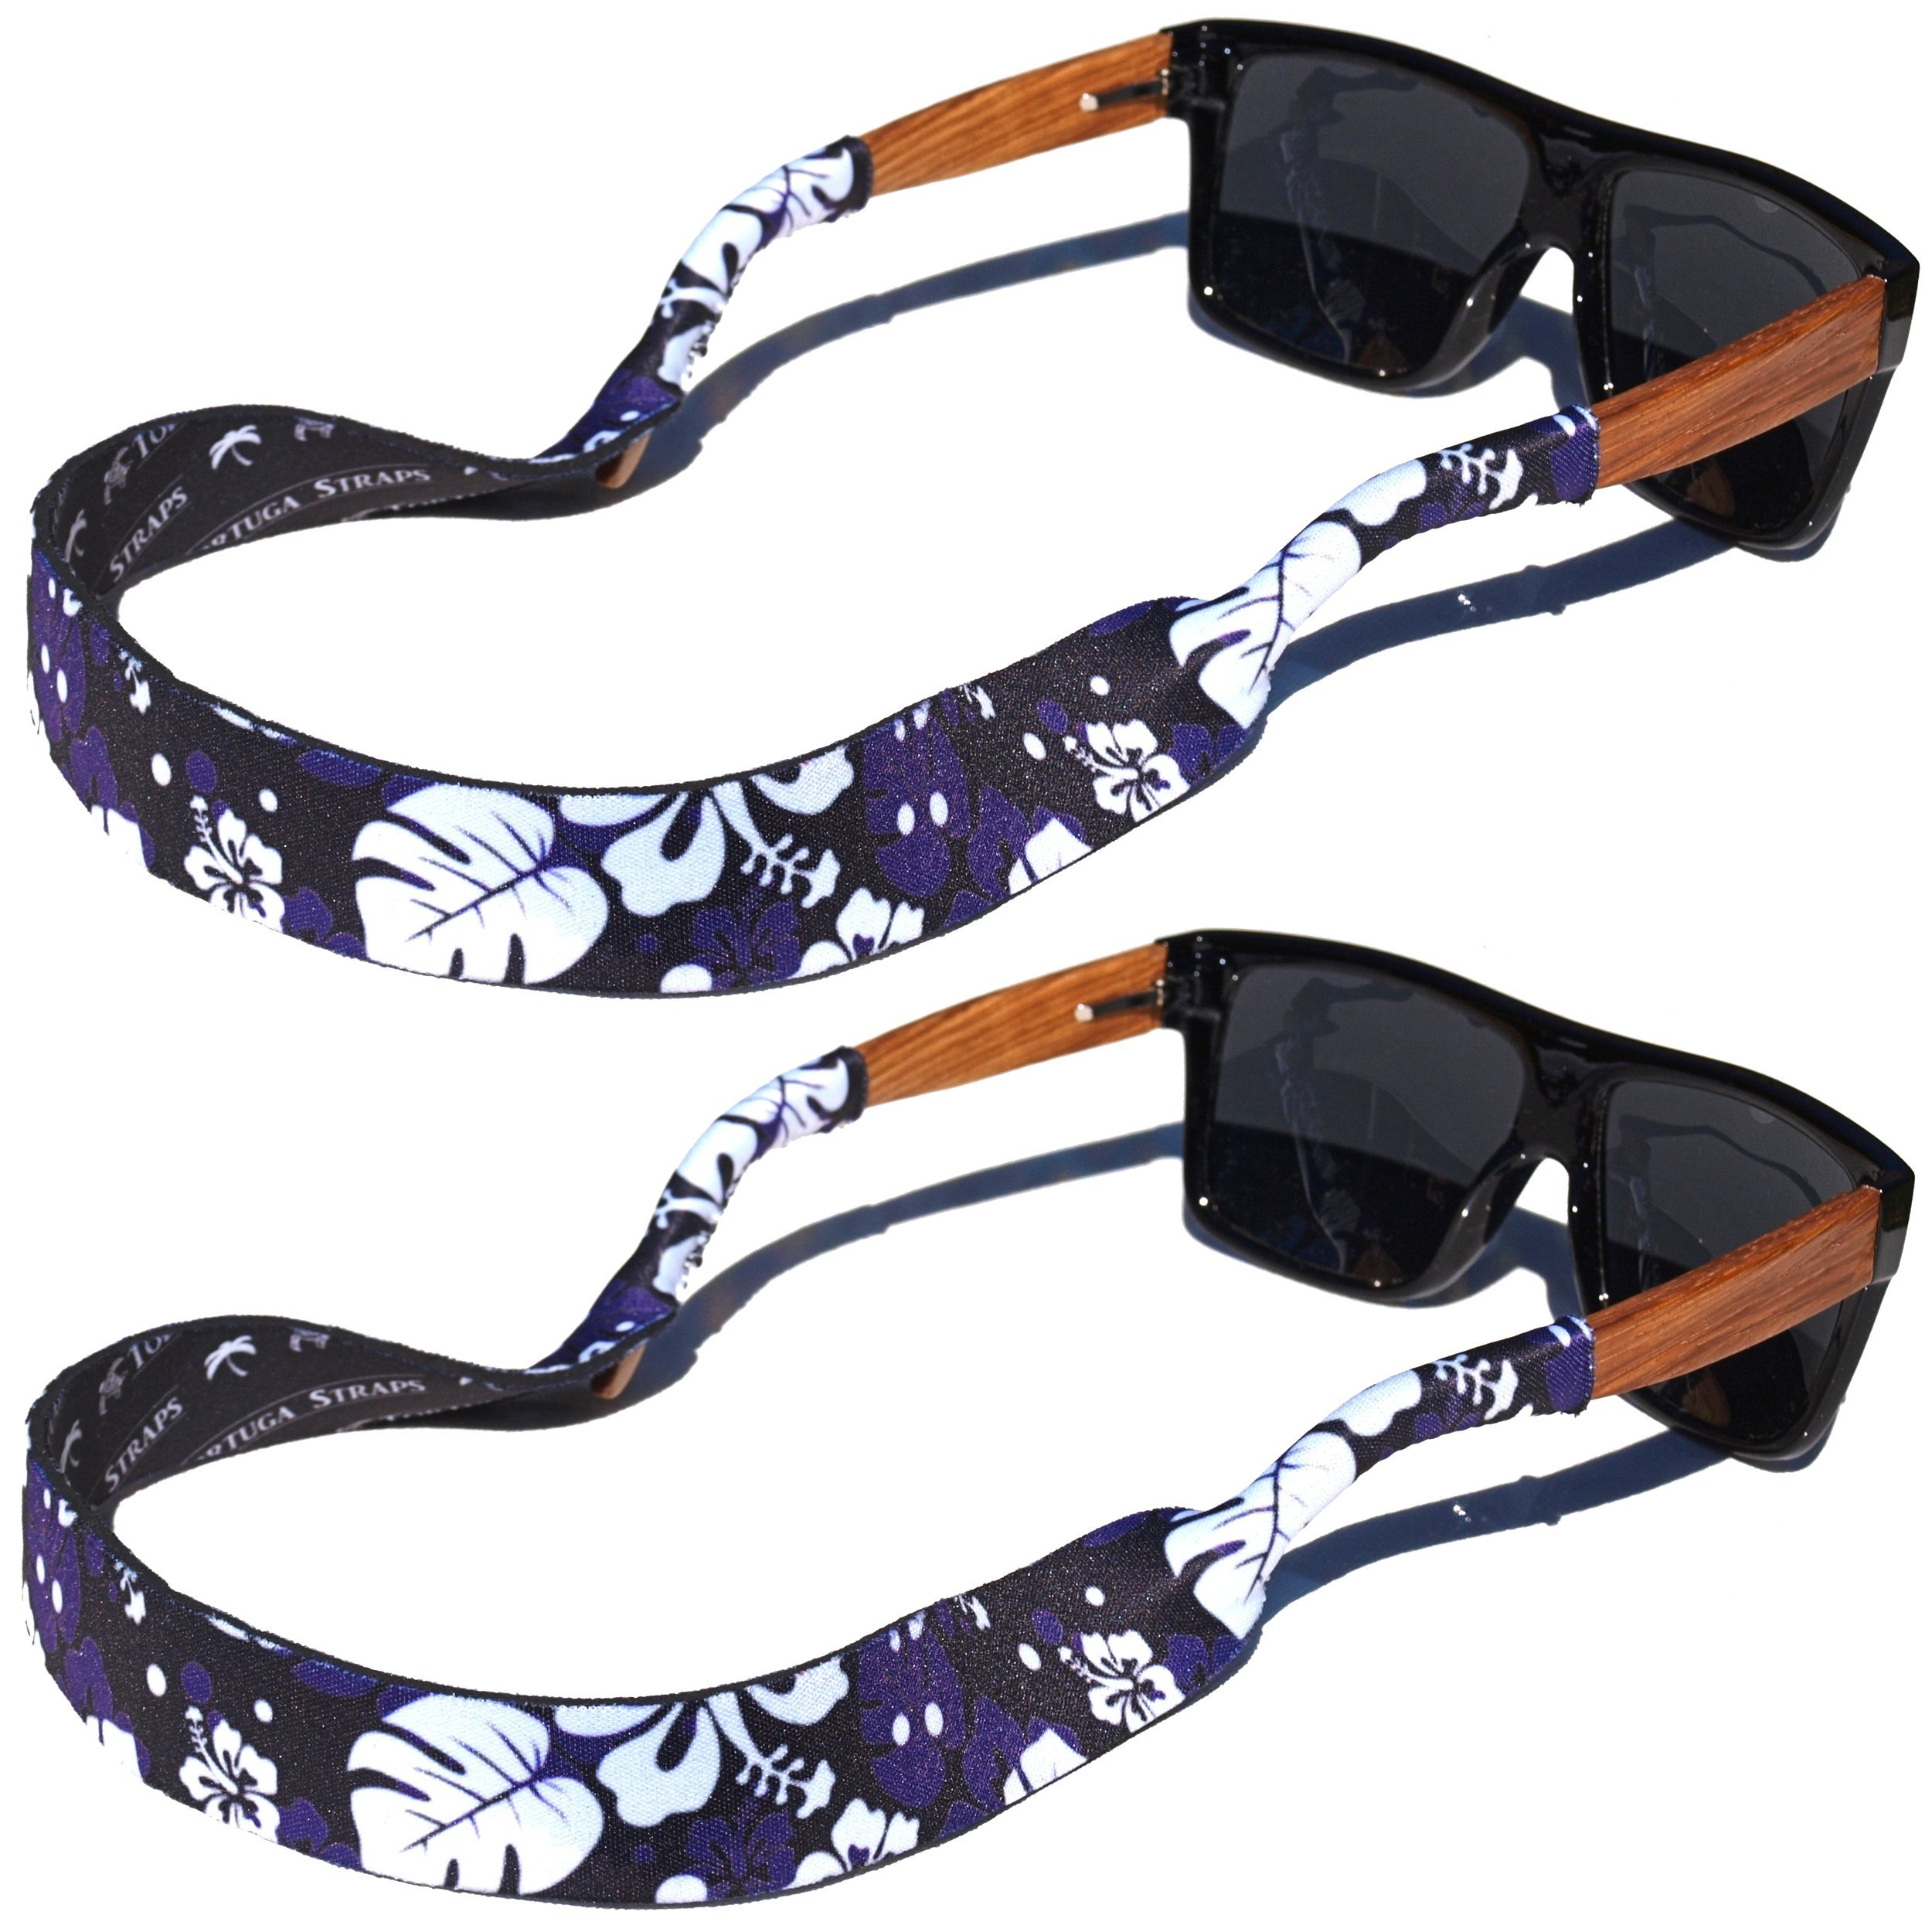 TORTUGA STRAPS FLOATZ Relaxed Fit Maui Blue Black -2 Pk Floating Sunglass Straps